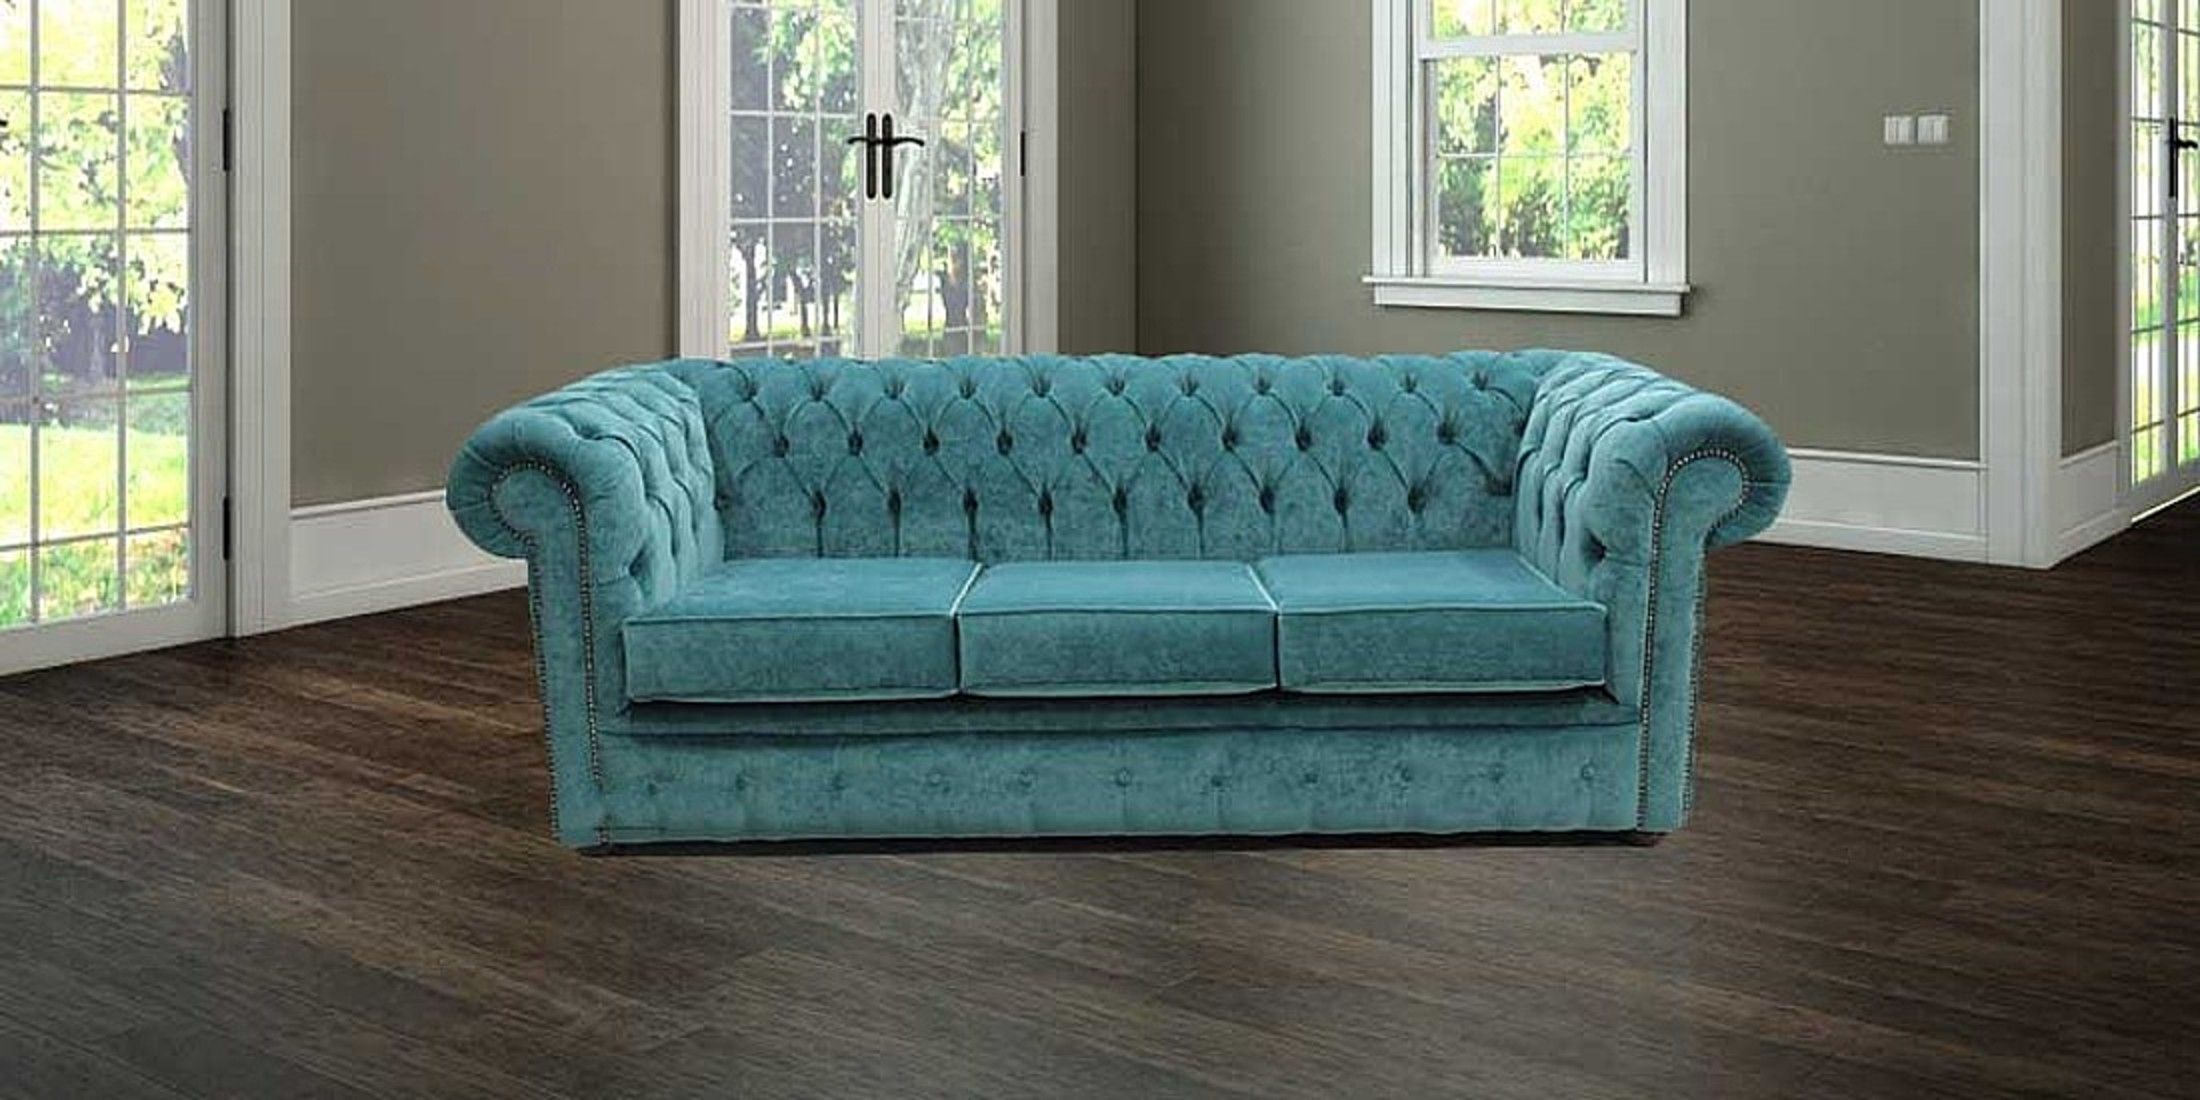 teal sofas sofa couch toronto blue velvet chesterfield designersofas4u 3 seater settee pimlico offer lo